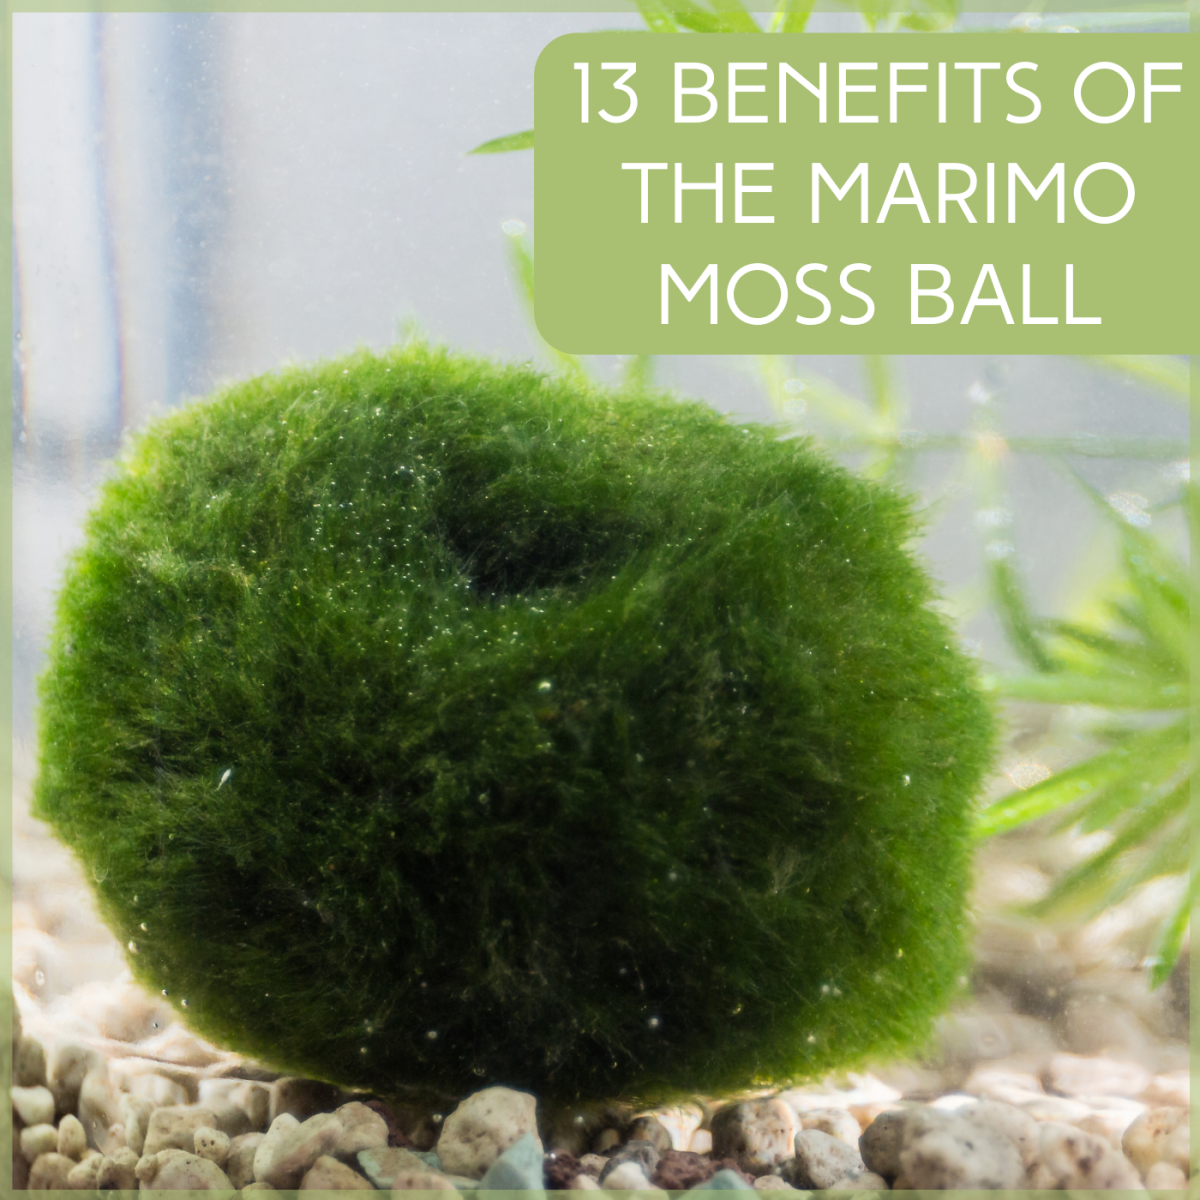 Discover what a moss ball can do for your aquarium, from absorbing nitrates to offering shrimp a snack.